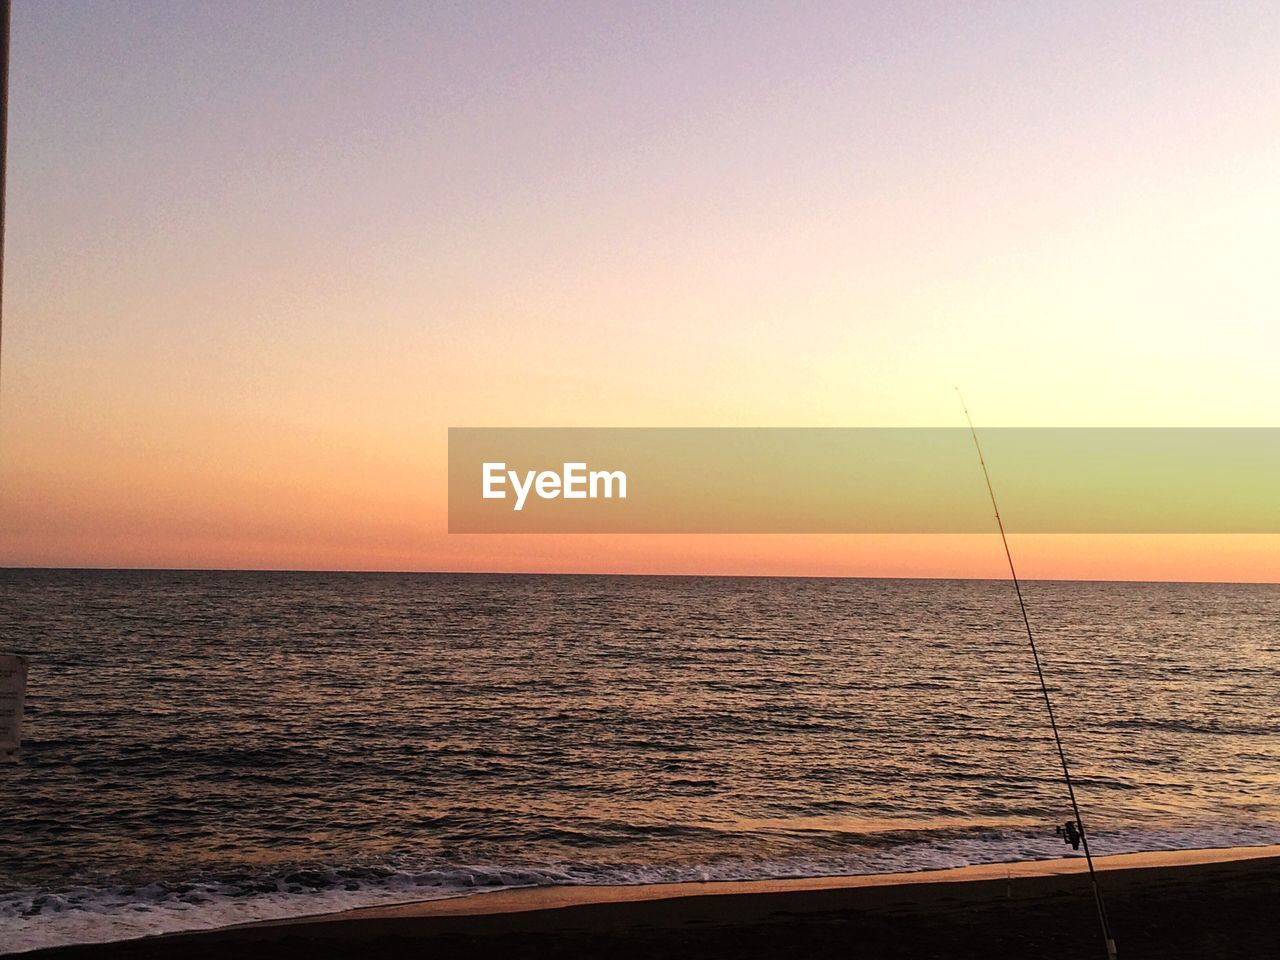 sea, sunset, water, scenics, beauty in nature, nature, horizon over water, tranquil scene, tranquility, beach, no people, idyllic, outdoors, sky, clear sky